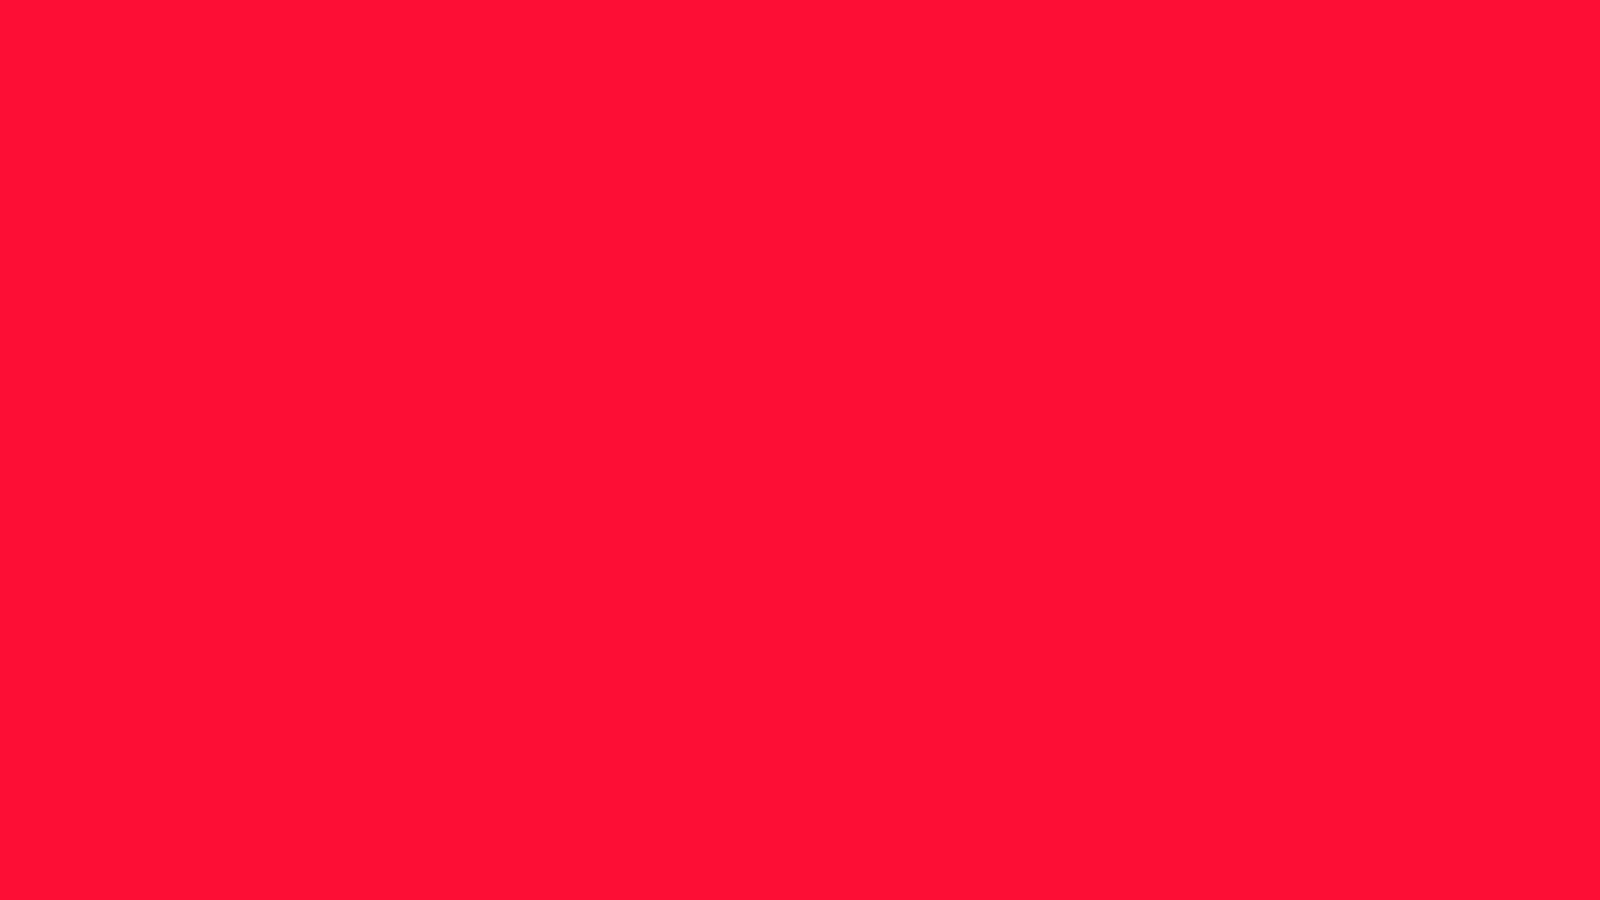 1600x900 Scarlet Crayola Solid Color Background